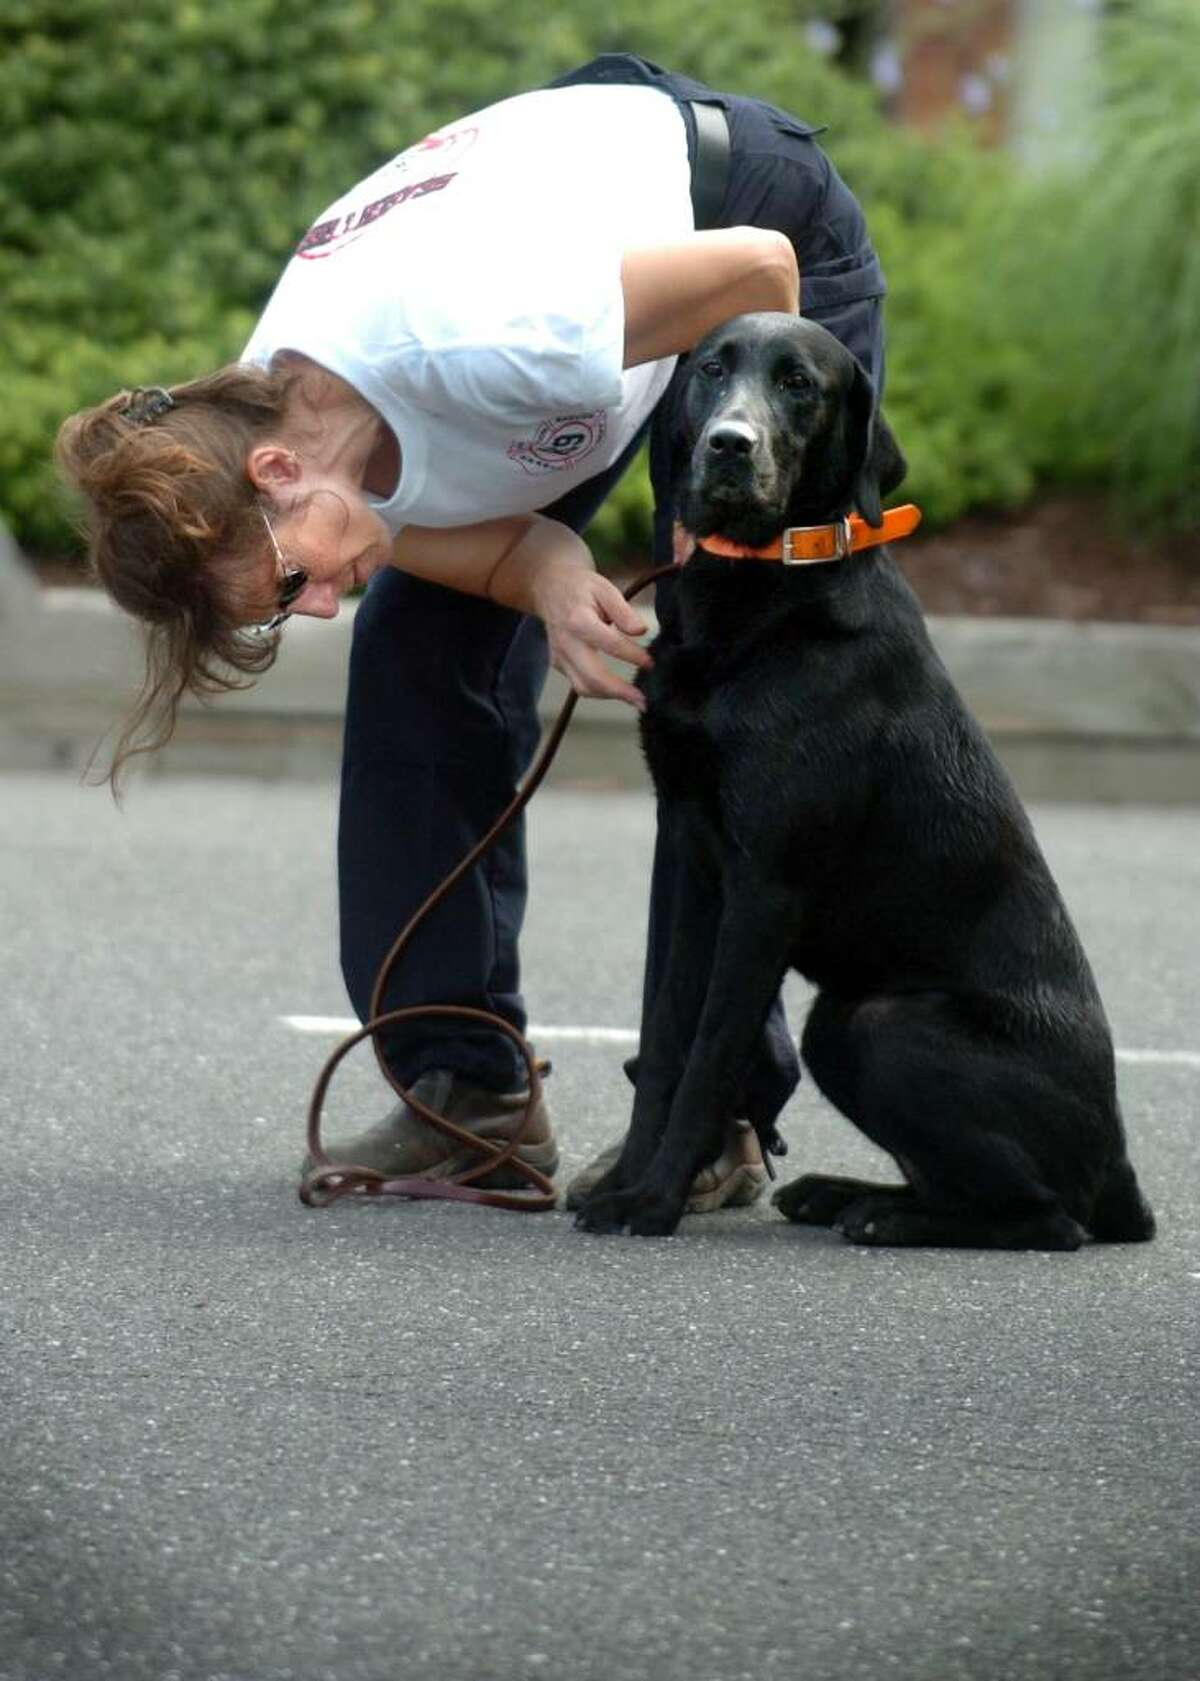 Deb Monde, a member of the Farmington Volunteer Fire Department, inspects her K9 rescue dog Murphy following a search of Seymour for evidence in the missing persons case of William Smolinski who was last seen in 2004. Monde volunteered with others from Resources in Search and Rescue, a Monroe organization, during an early morning search effort Saturday July 10, 2010. Family members and volunteers also distributed flyers at local businesses throughout the Valley to spread awareness about the continued search efforts for Smolinski.